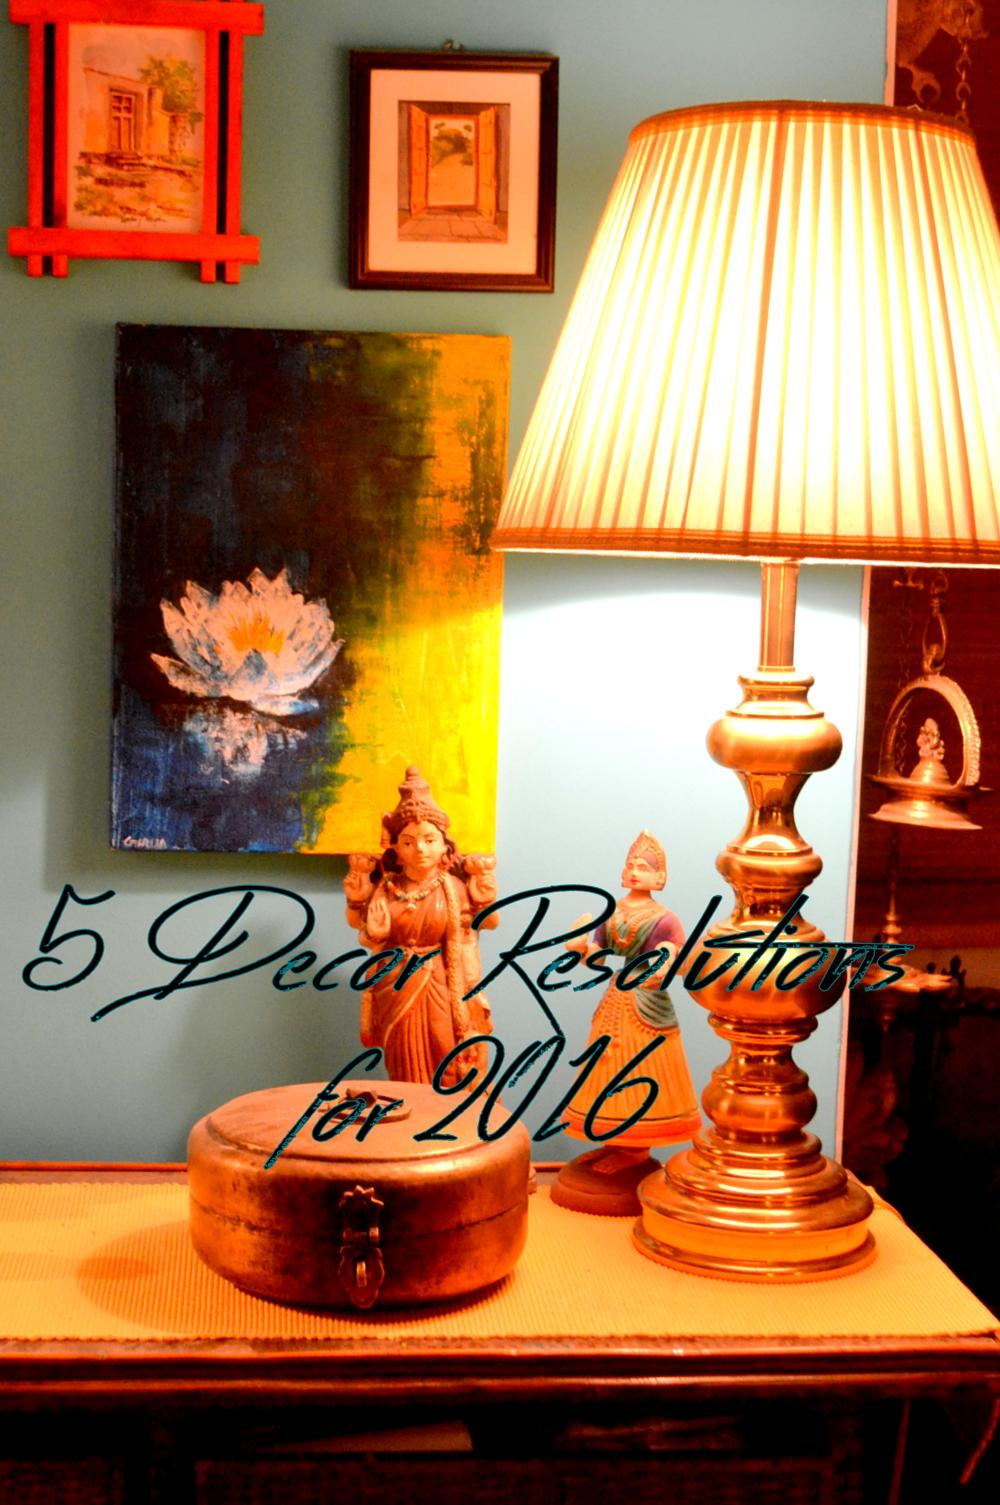 Decor Resolutions for 2016